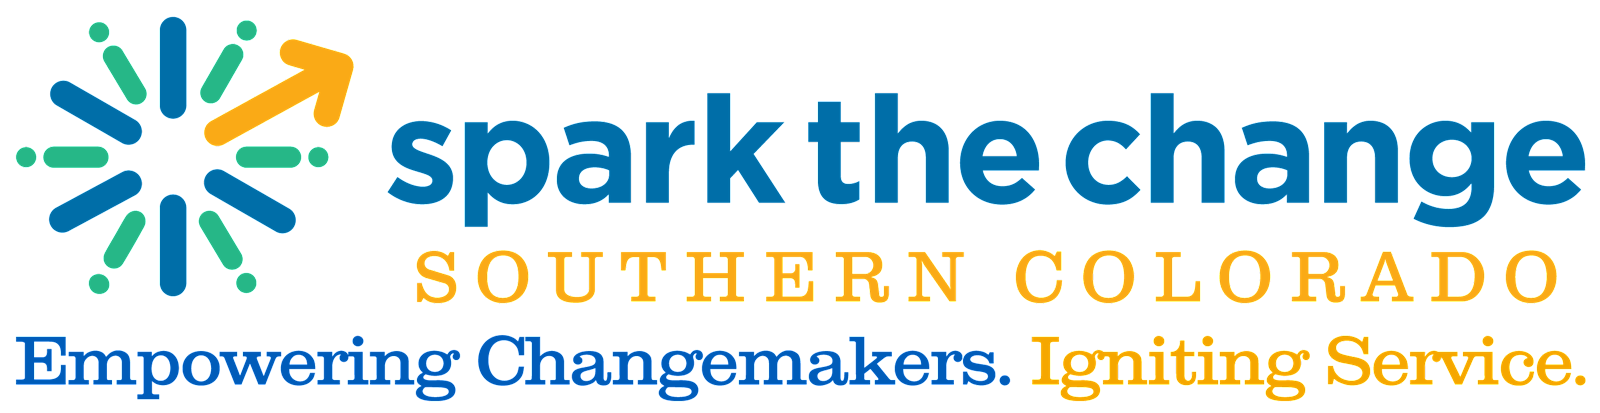 Spark the Change Southern Colorado